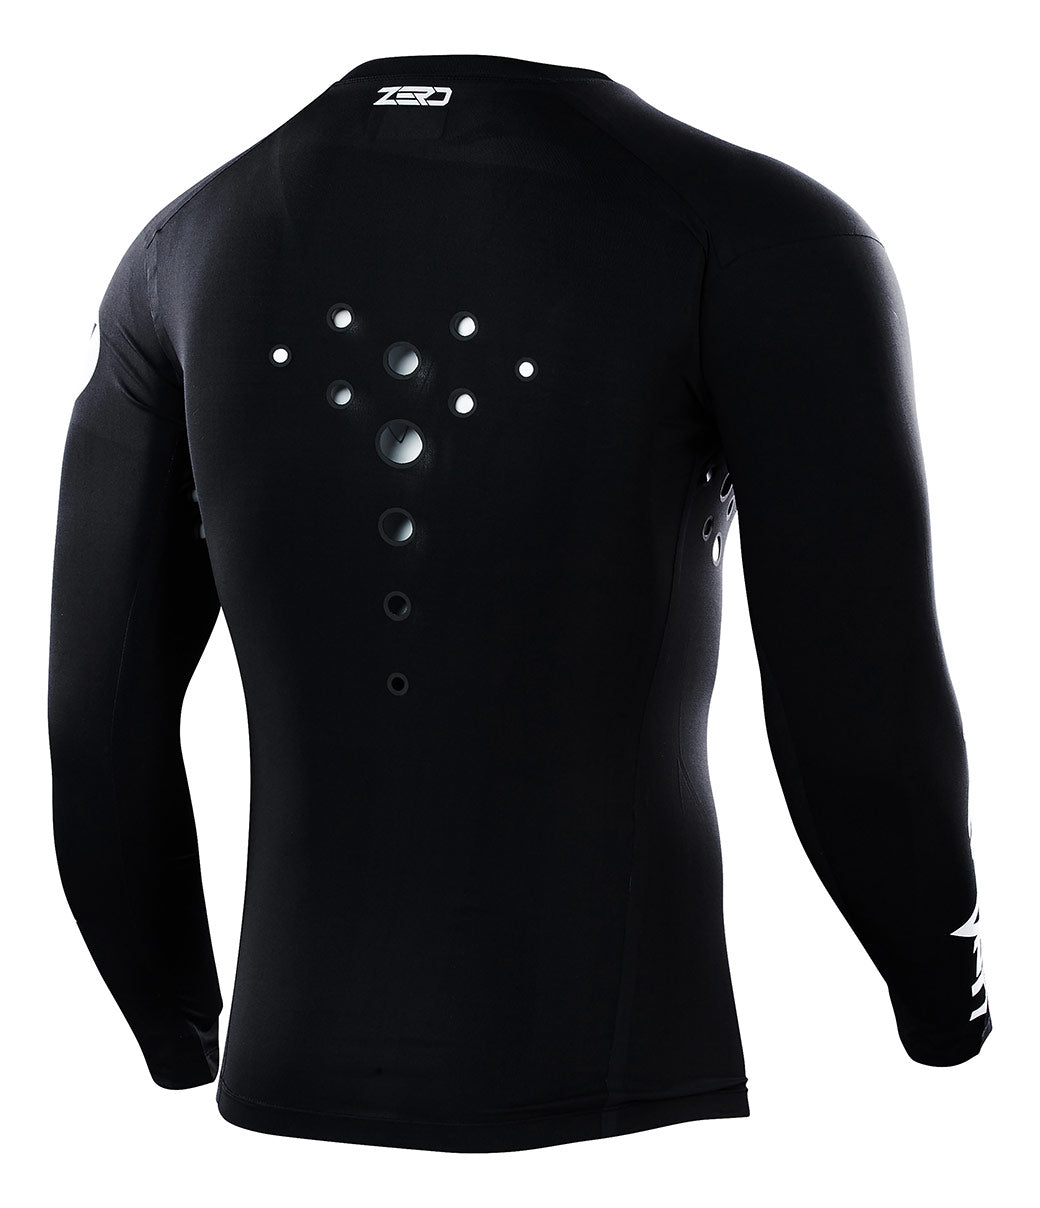 Zero Staple Laser Cut Compression Jersey - Black